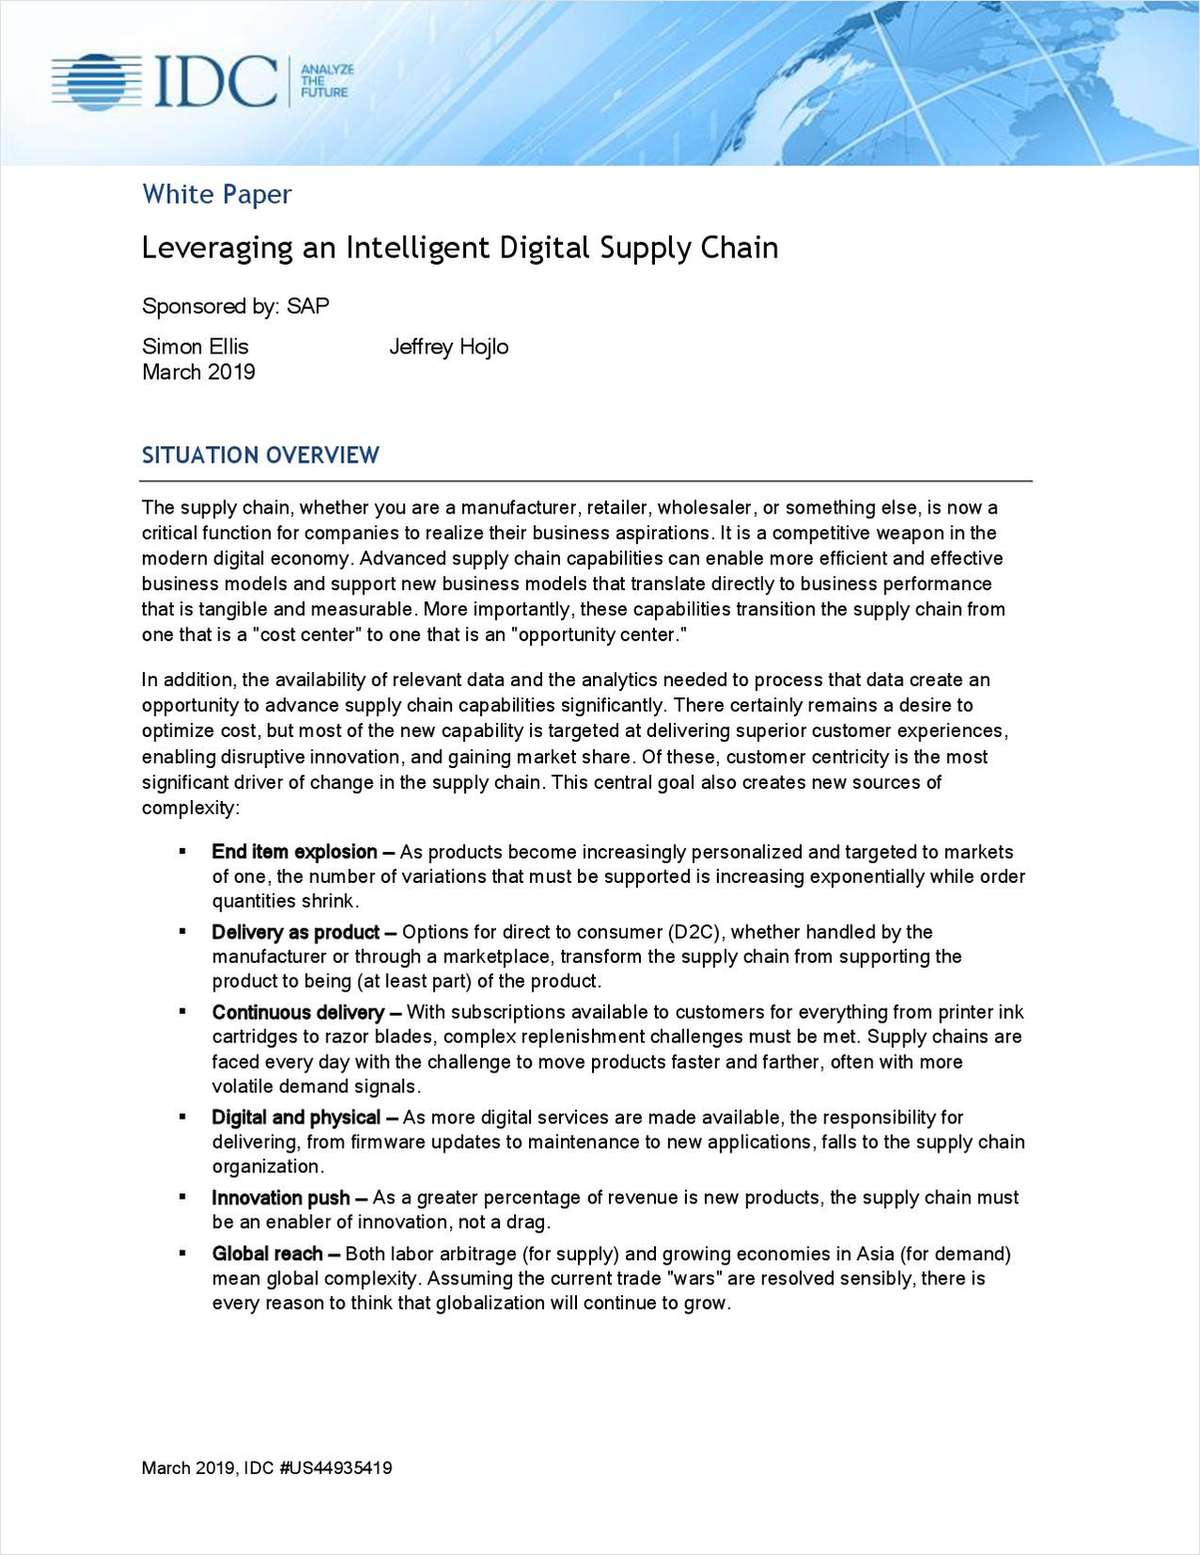 IDC Design to Operate -- Leveraging an Intelligent Digital Supply Chain